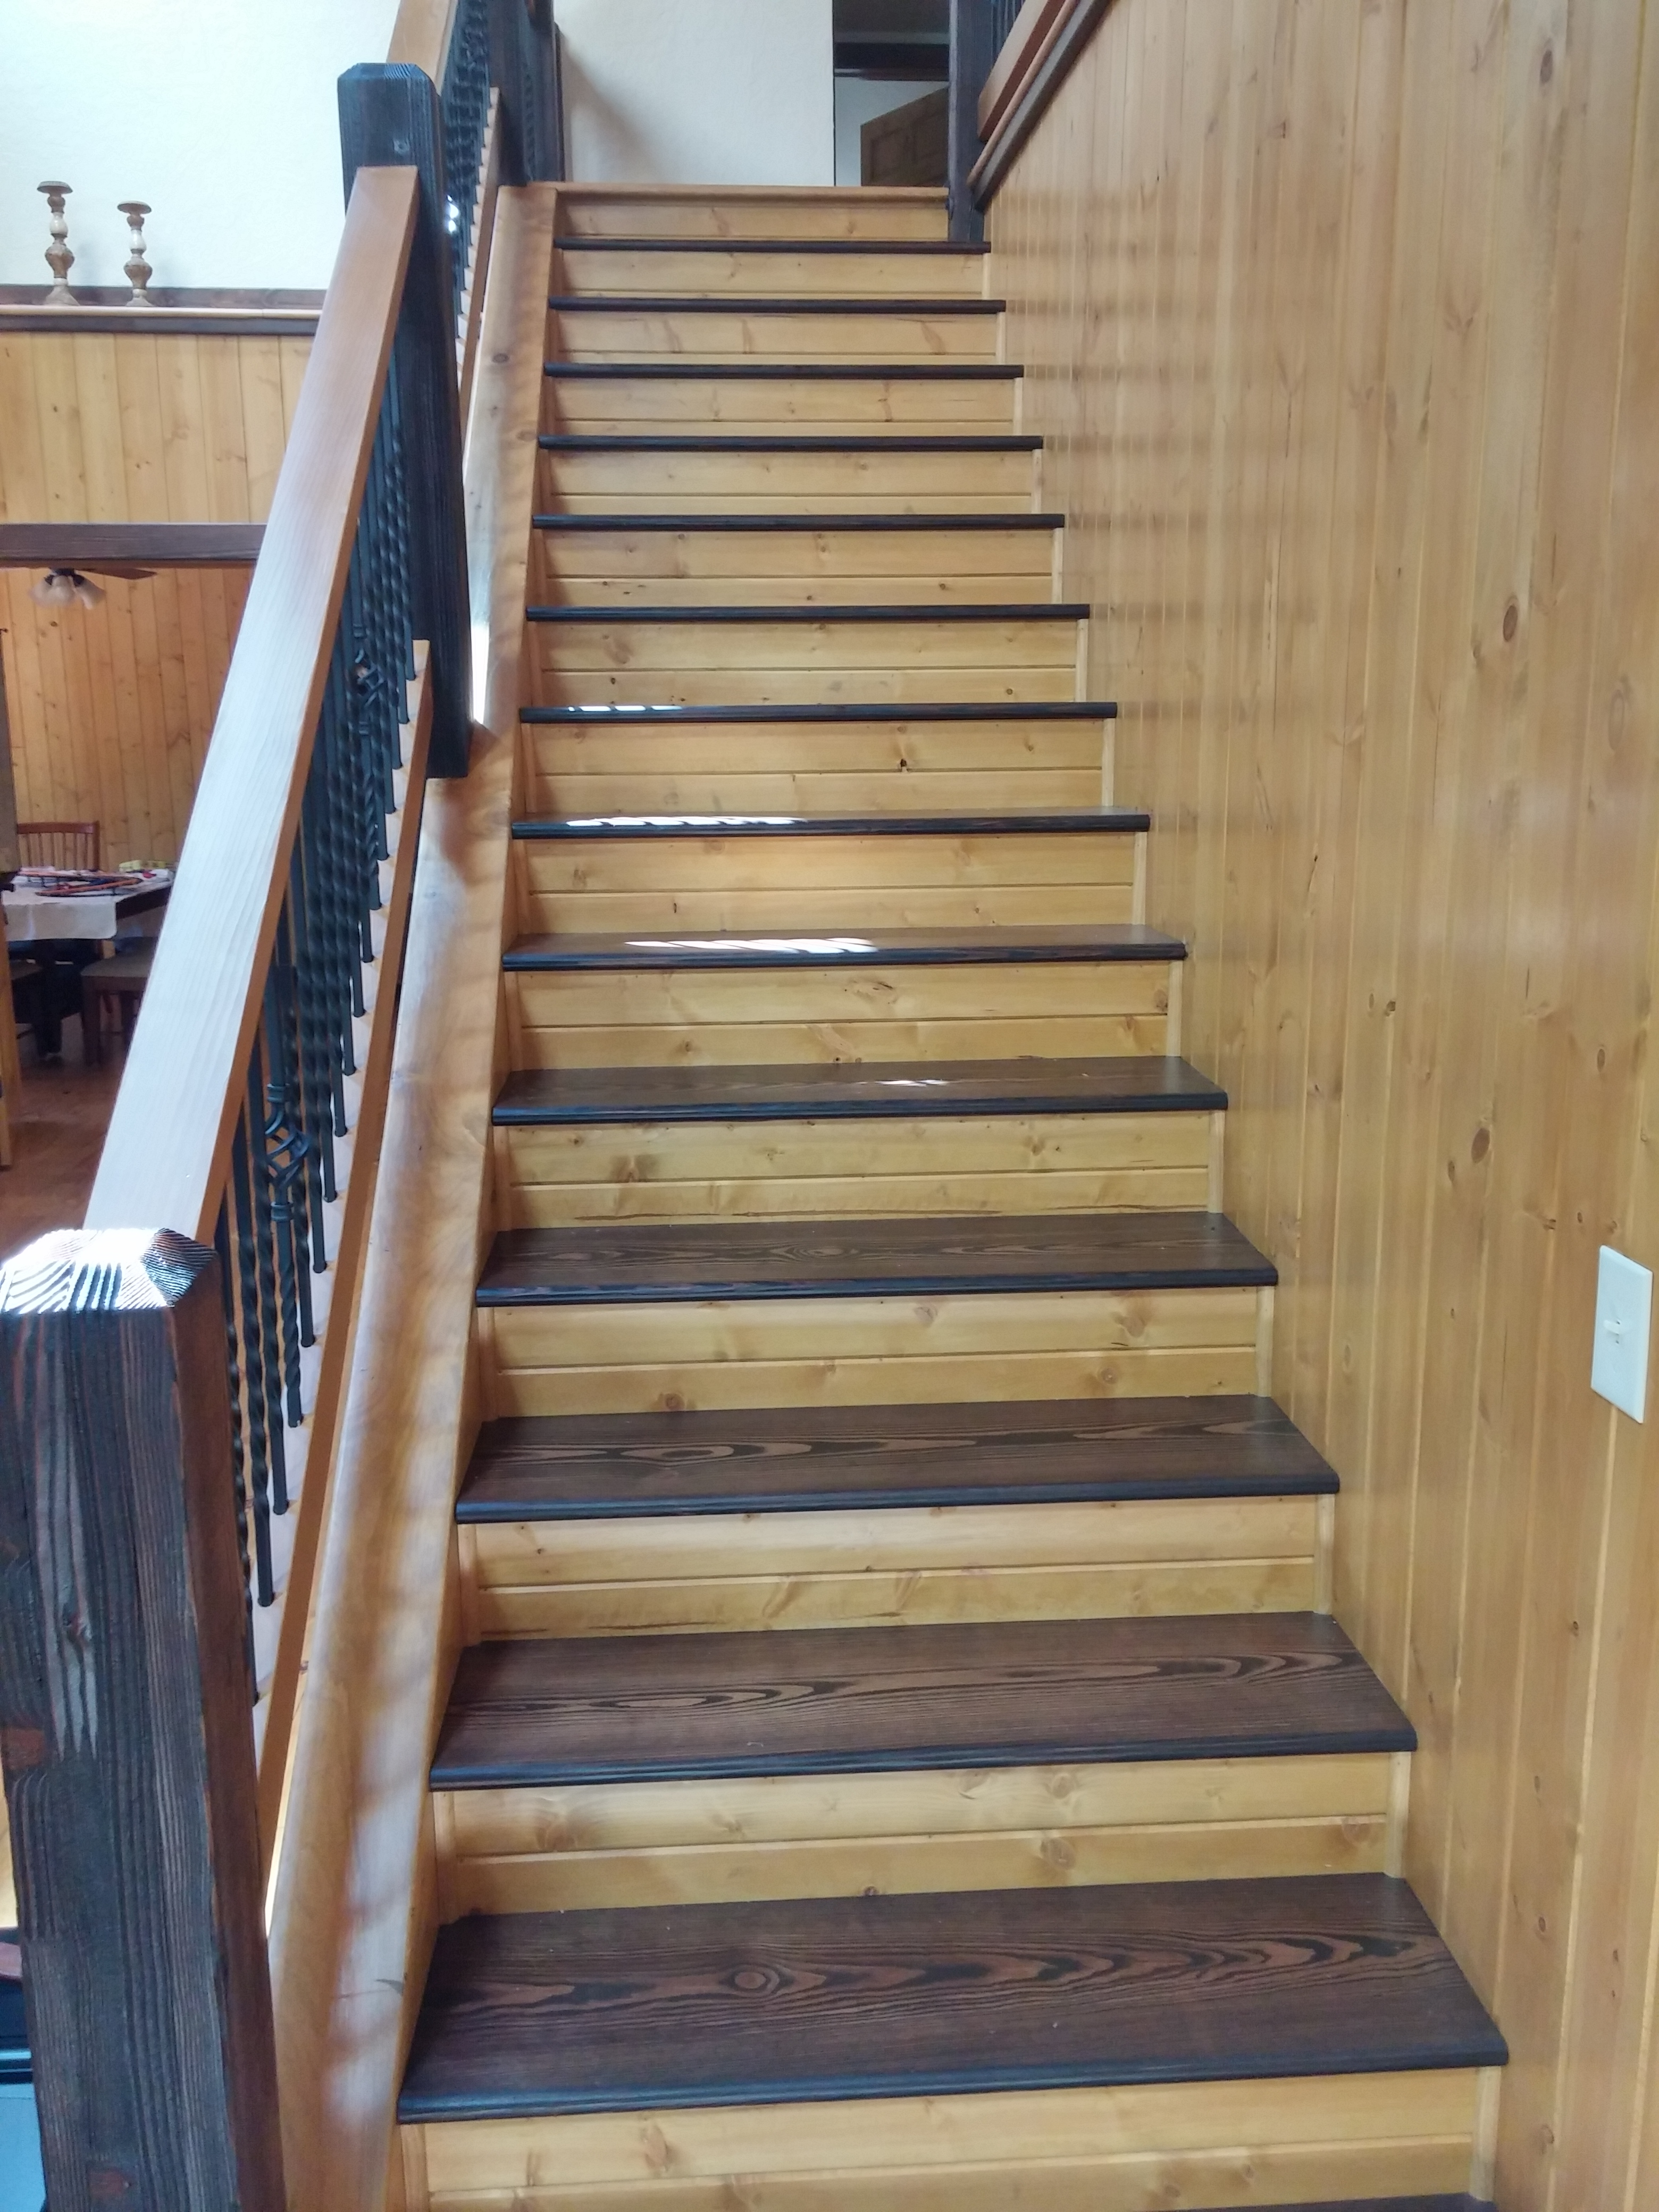 Do You Have A Beautiful Wood Staircase And Railings In Your Home? WoodTeks  LLC Specializes In Sanding And Refinishing Wooden Stairs And Railings.